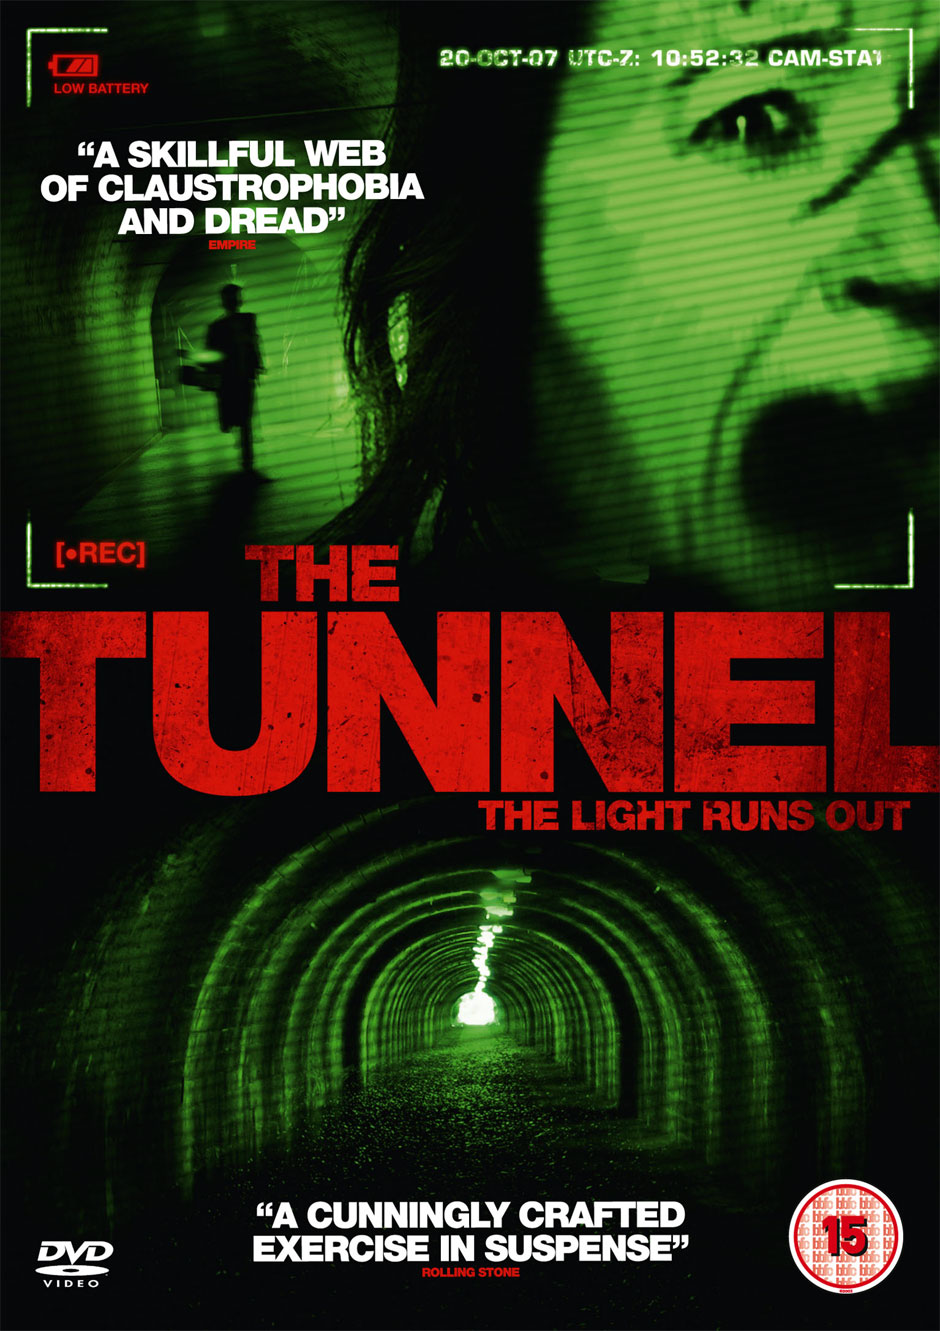 http://www.screenlaunch.com/wp-content/uploads/2013/09/tunnel-poster-2.jpg